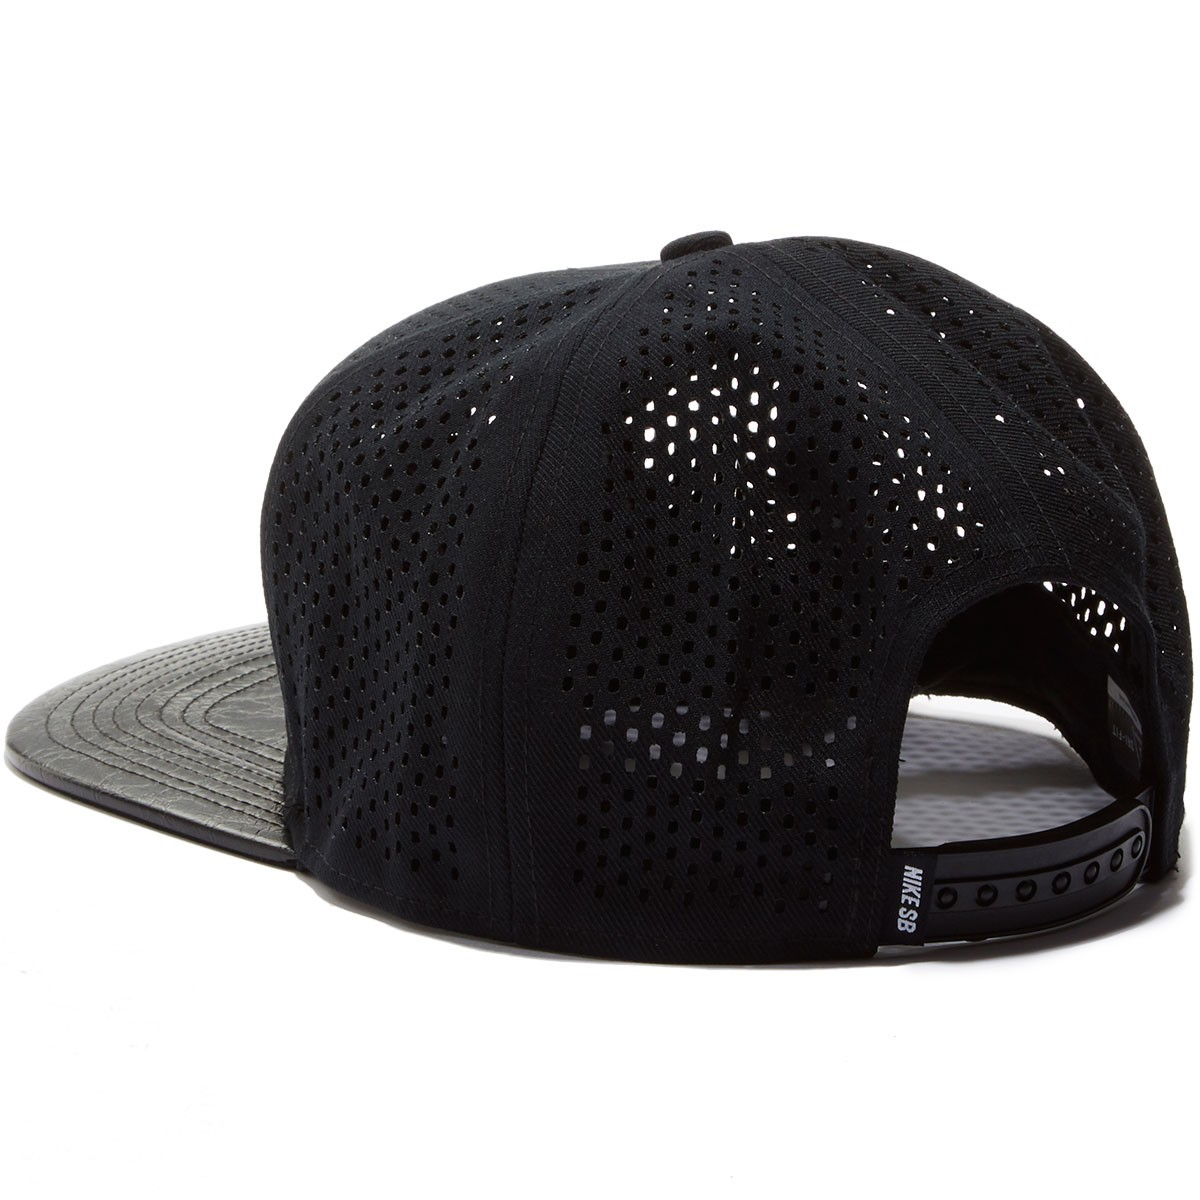 Nike SB S+ Road Performance Trucker Hat - Black 2da51558cb77